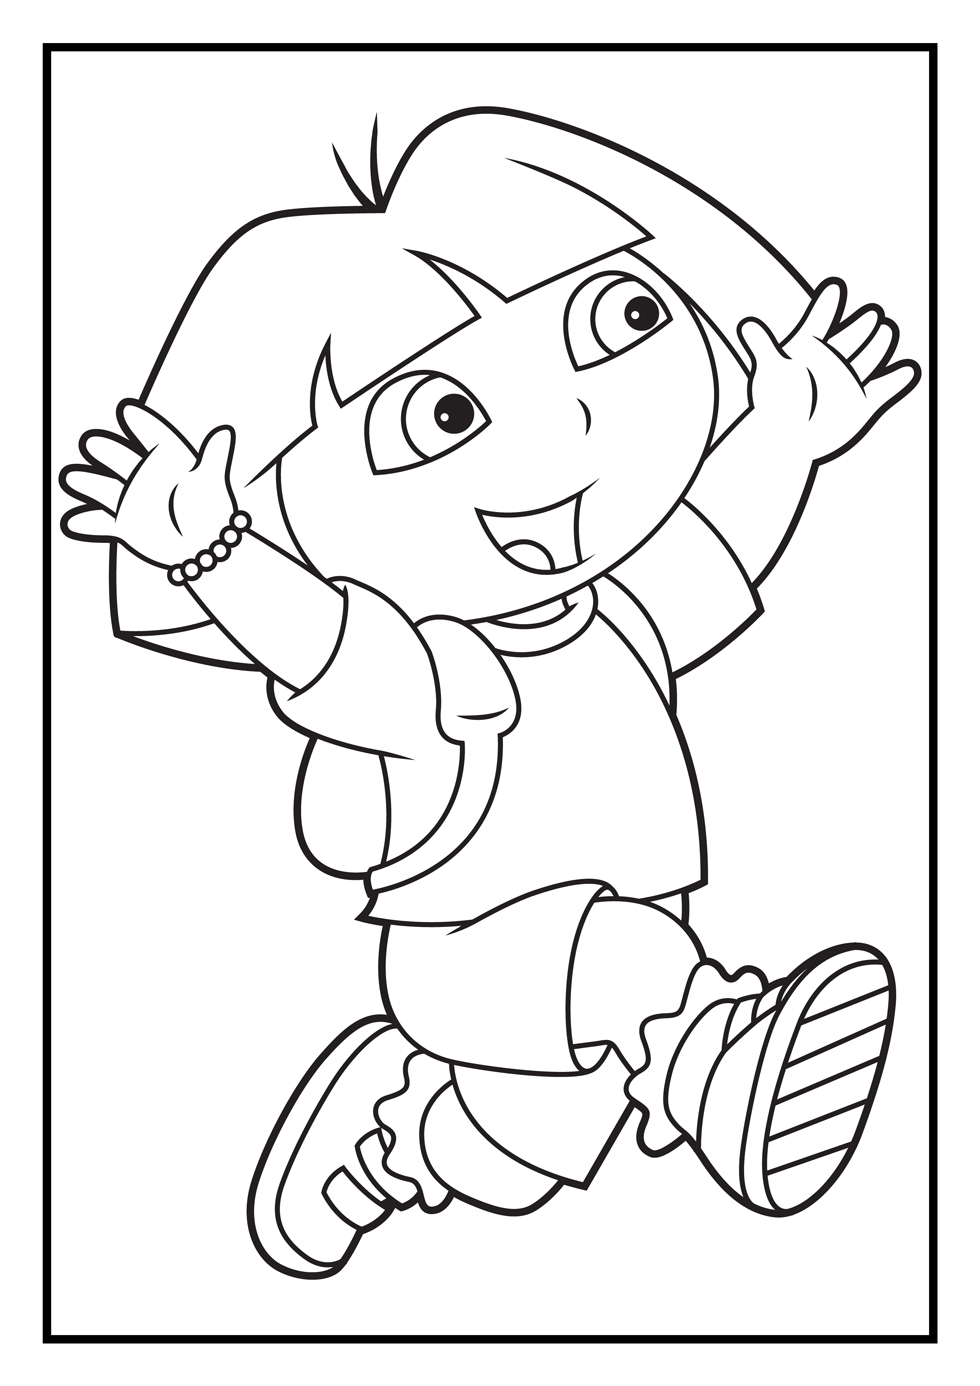 Dora explorer coloring pages games murderthestout for Dora the explorer coloring pages to print